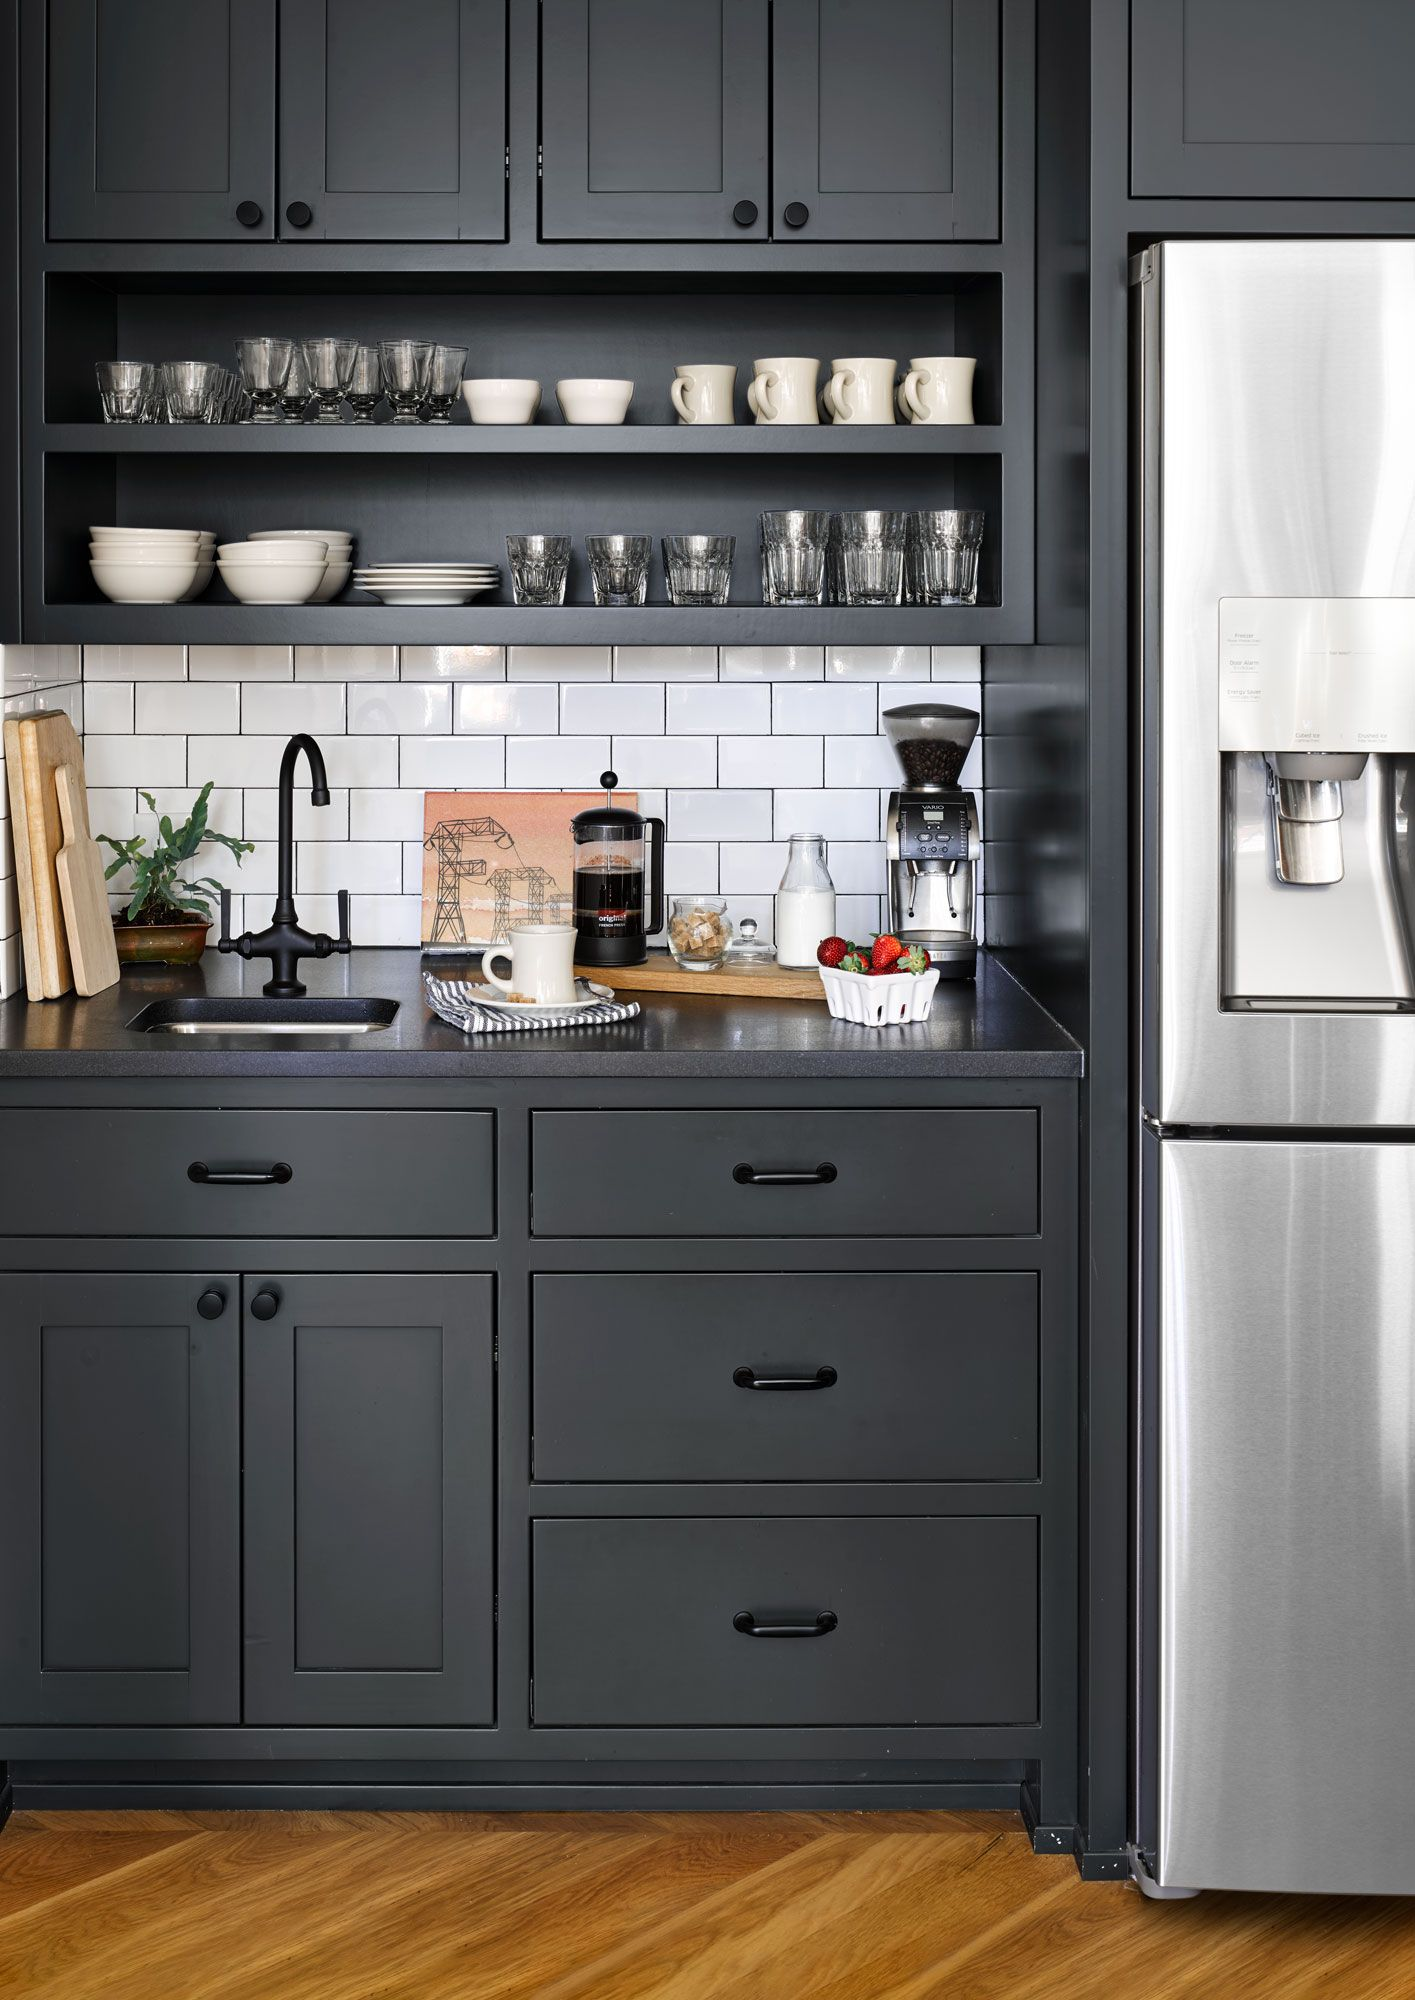 Relaxing Shades Of Blue Update This 1916 Home For An Atlanta Restaurant Duo In 2020 Kitchen Cupboard Designs Grey Kitchen Cupboards Kitchen Design Small